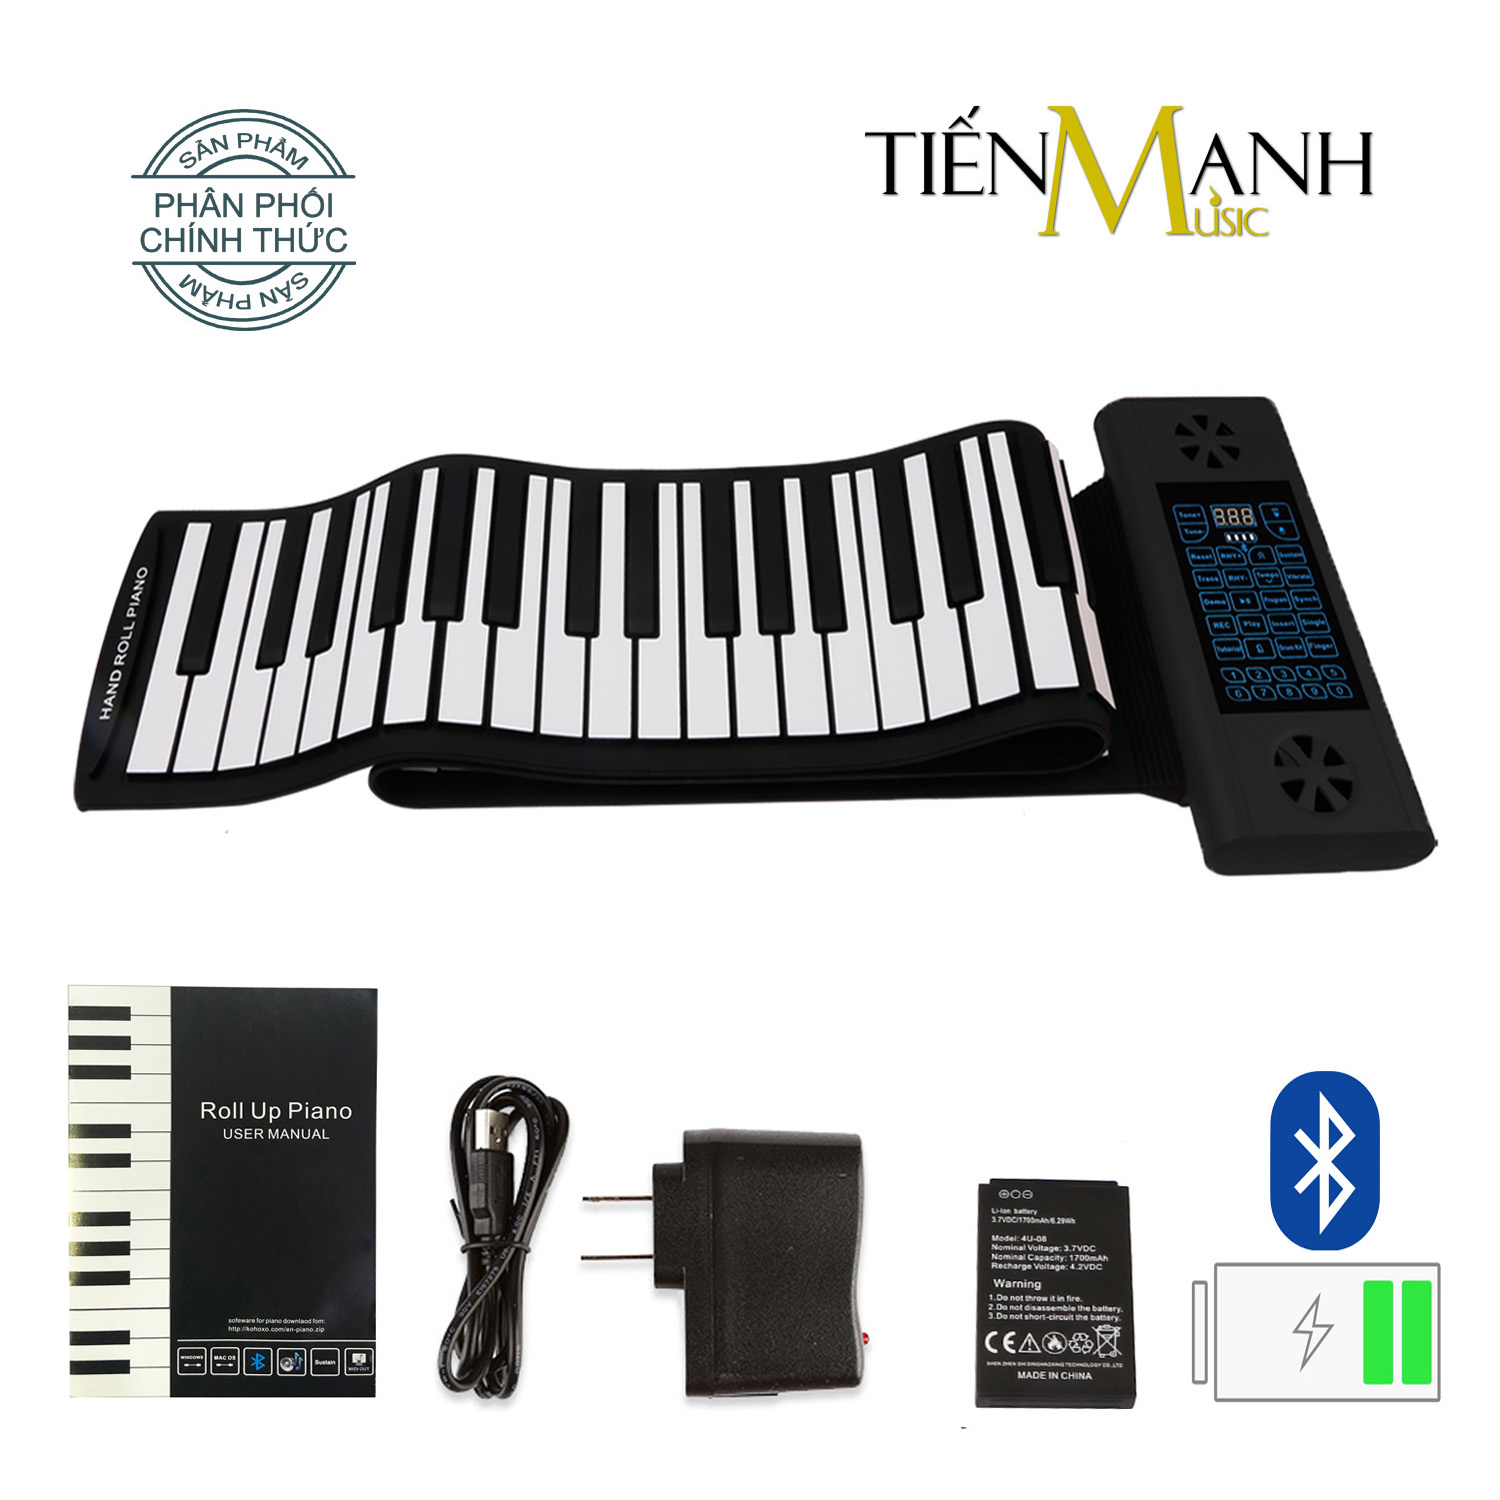 Đàn Piano Điện Konix PS61 - 61 phím cuộn mềm dẻo Flexible PS-61 - (Roll Up Piano - Pin sạc 170mAh - Midi Keyboard Controller)